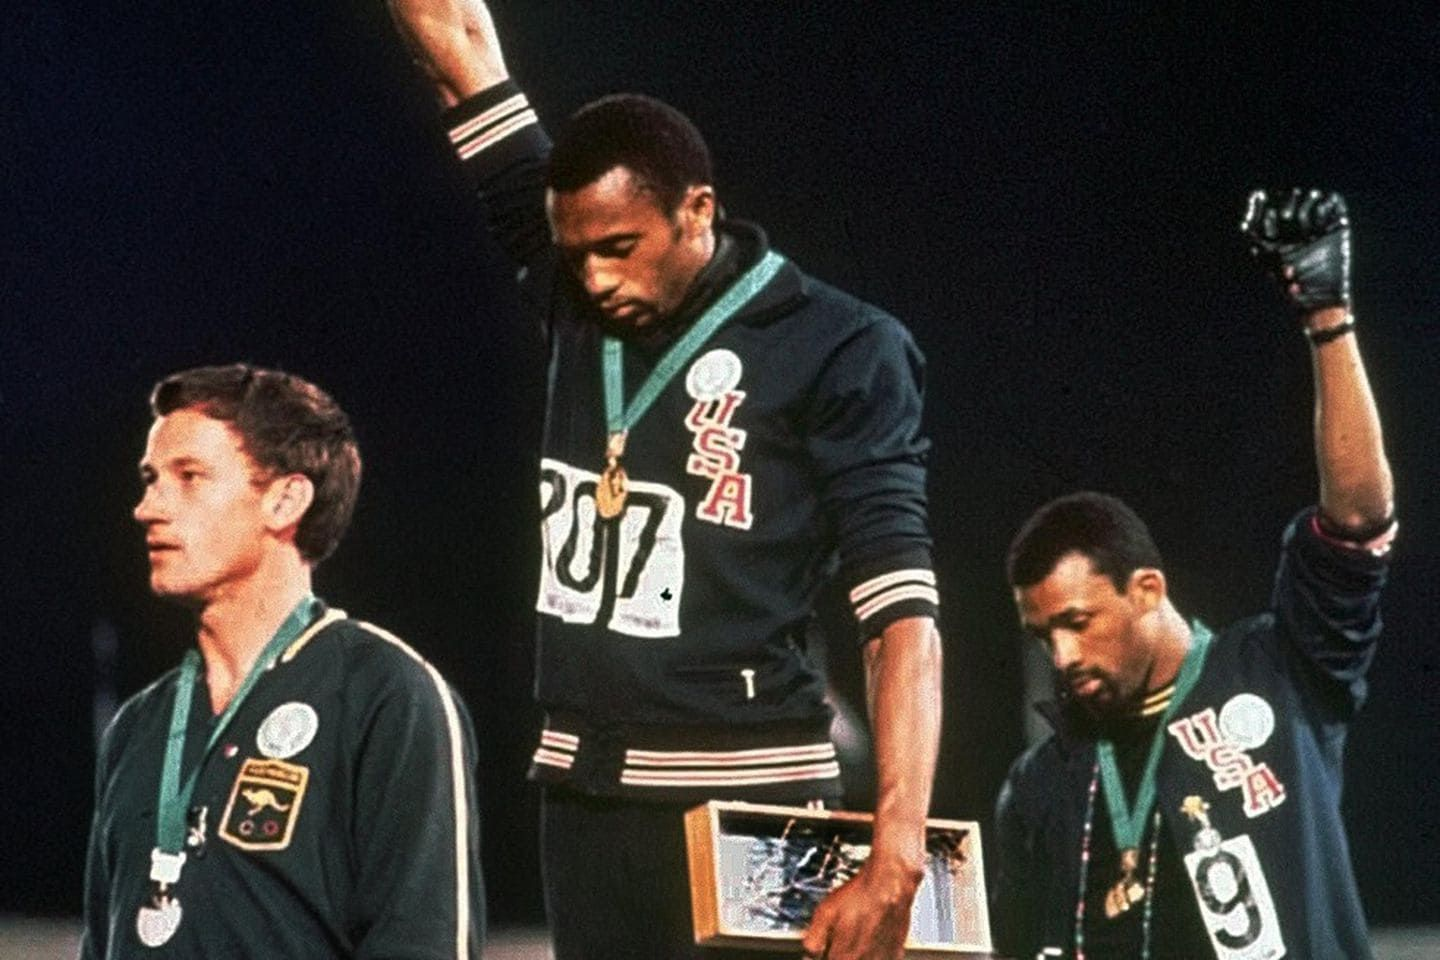 Athletes Will Be Banned From Protesting at the 2020 Tokyo Olympics. But the Games Have a Long History of Political Demonstrations